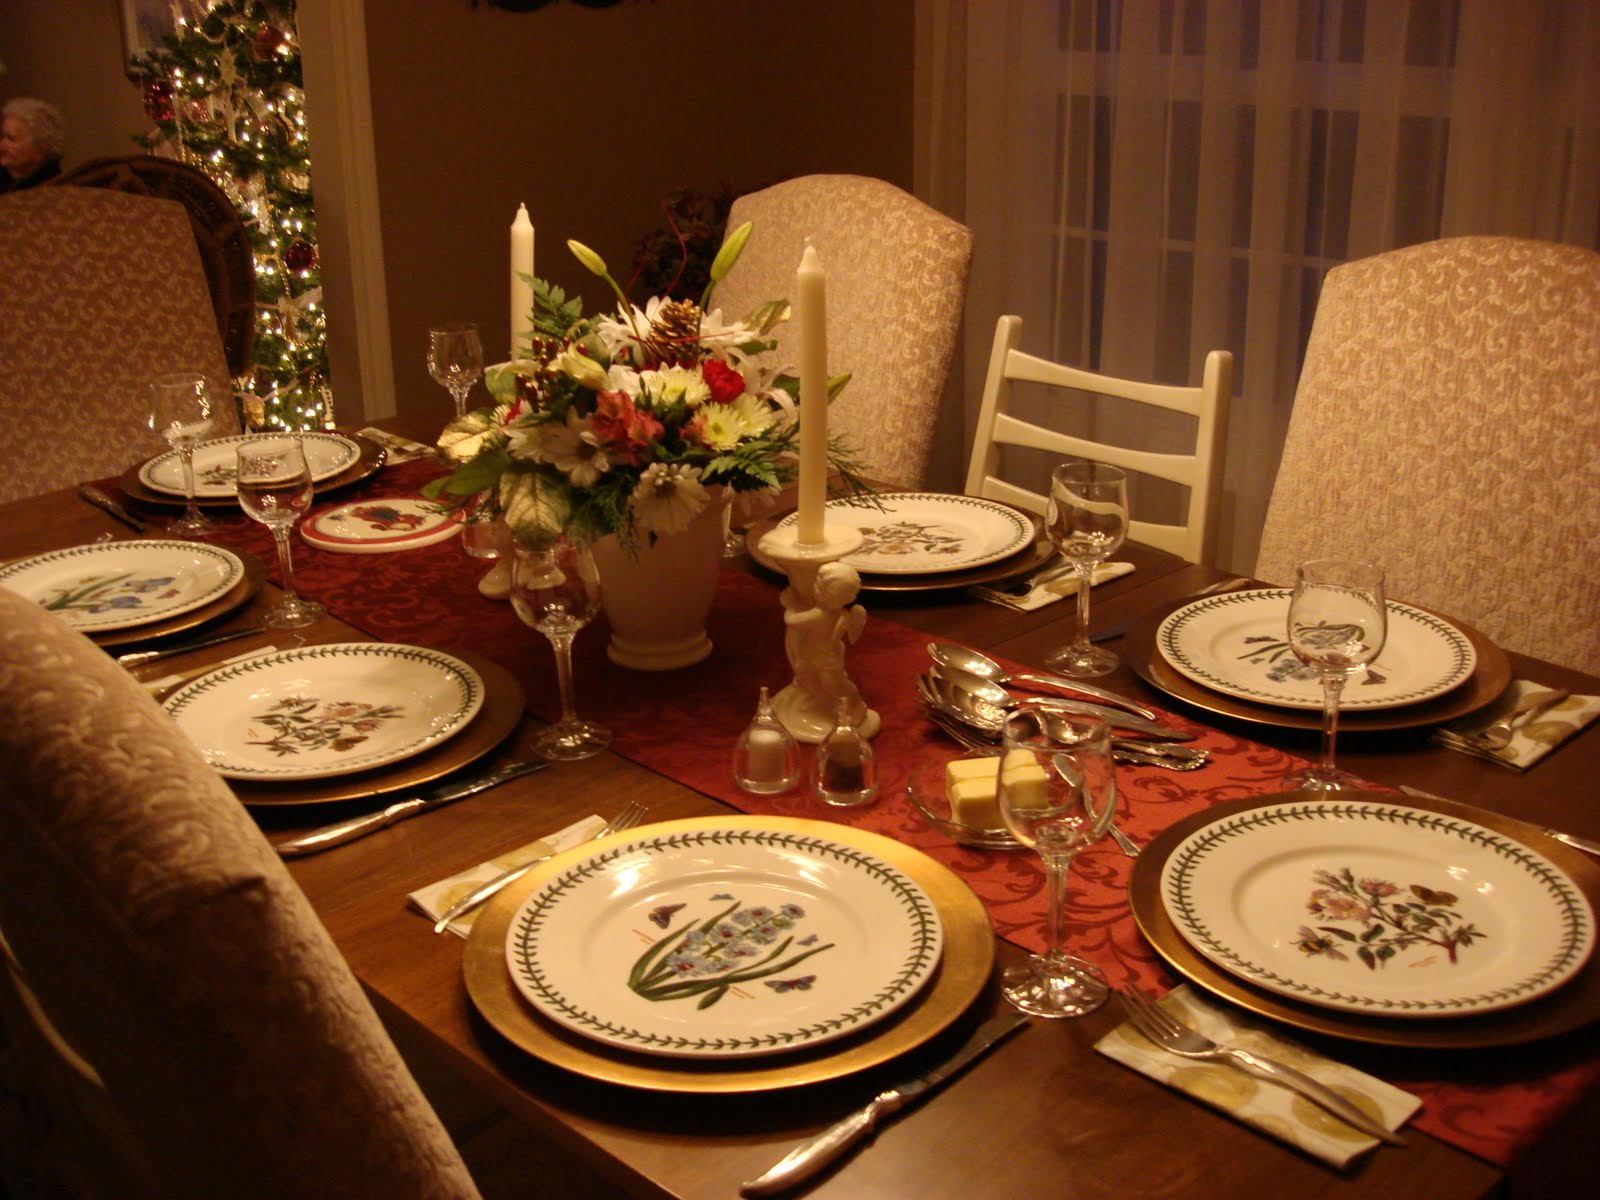 Dining table decorating ideas Christmas decorations for the dinner table